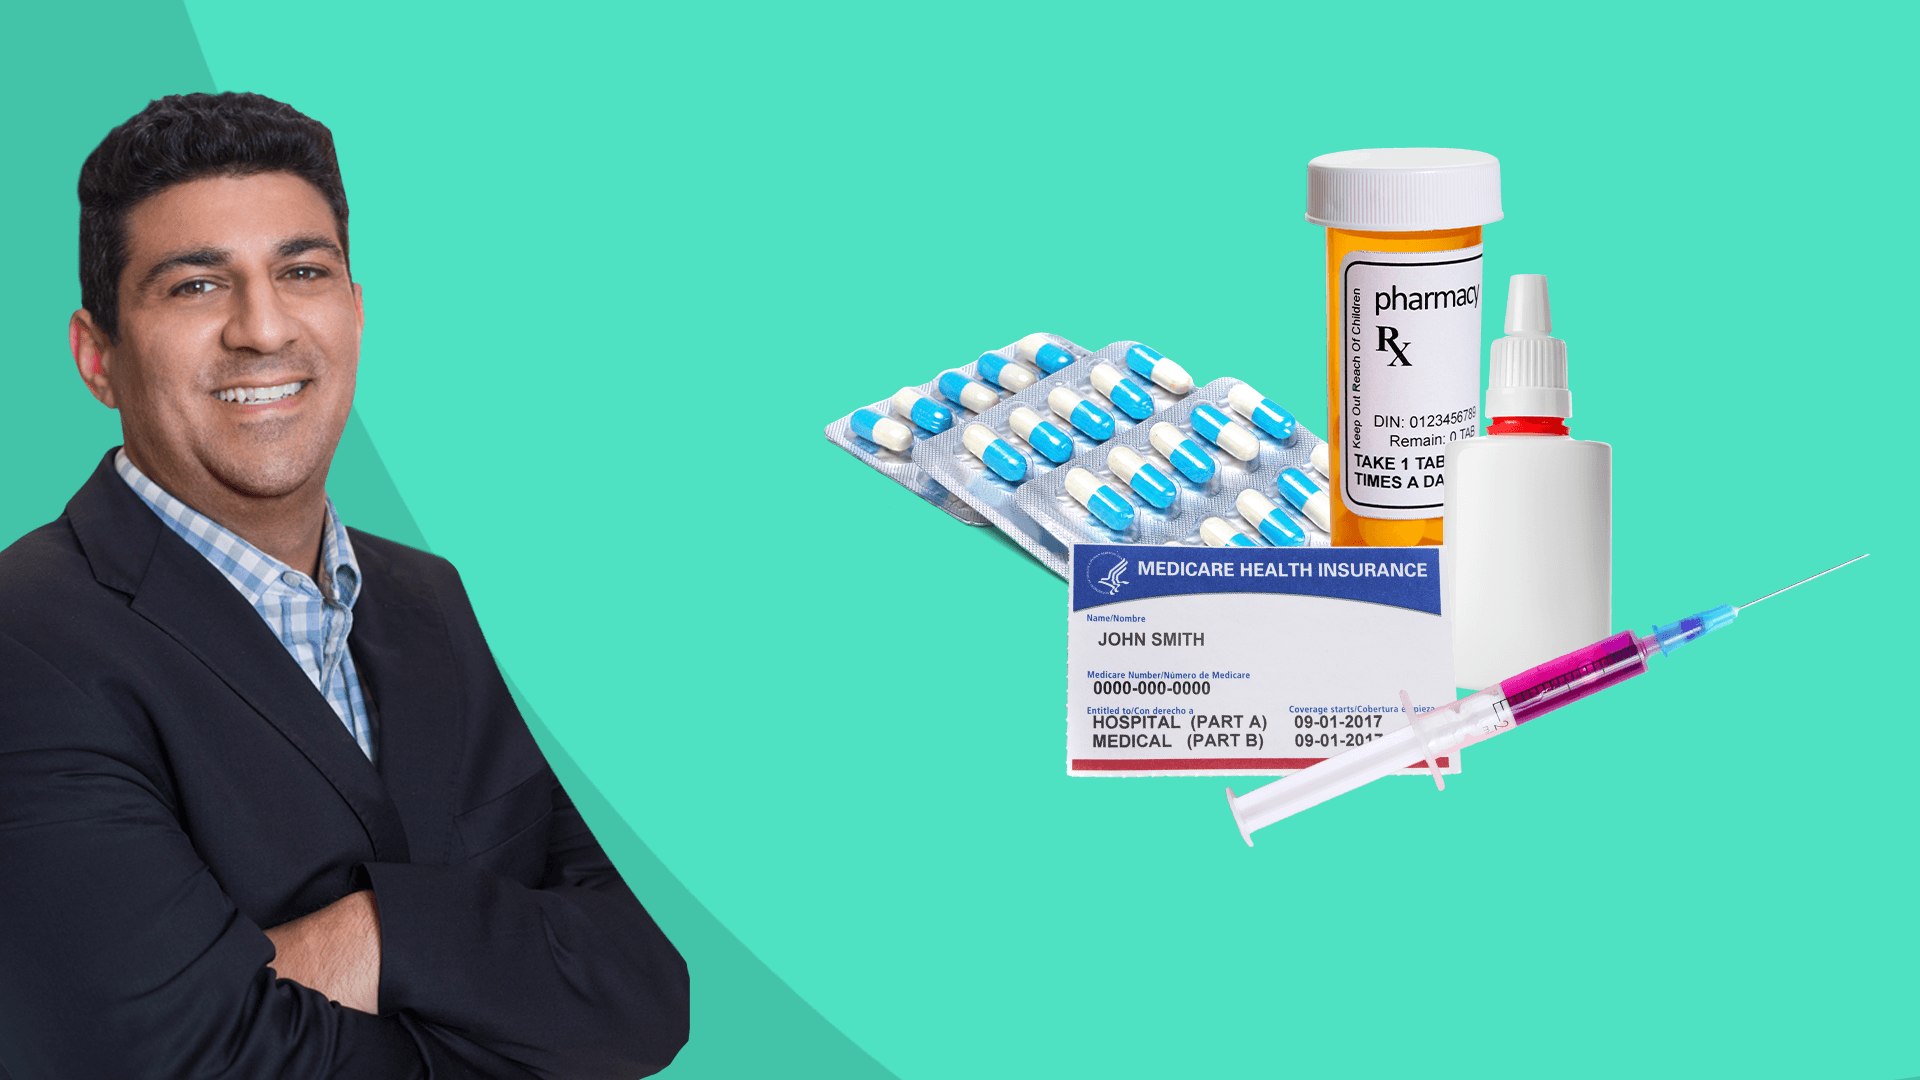 10 things a pharmacist can do for you